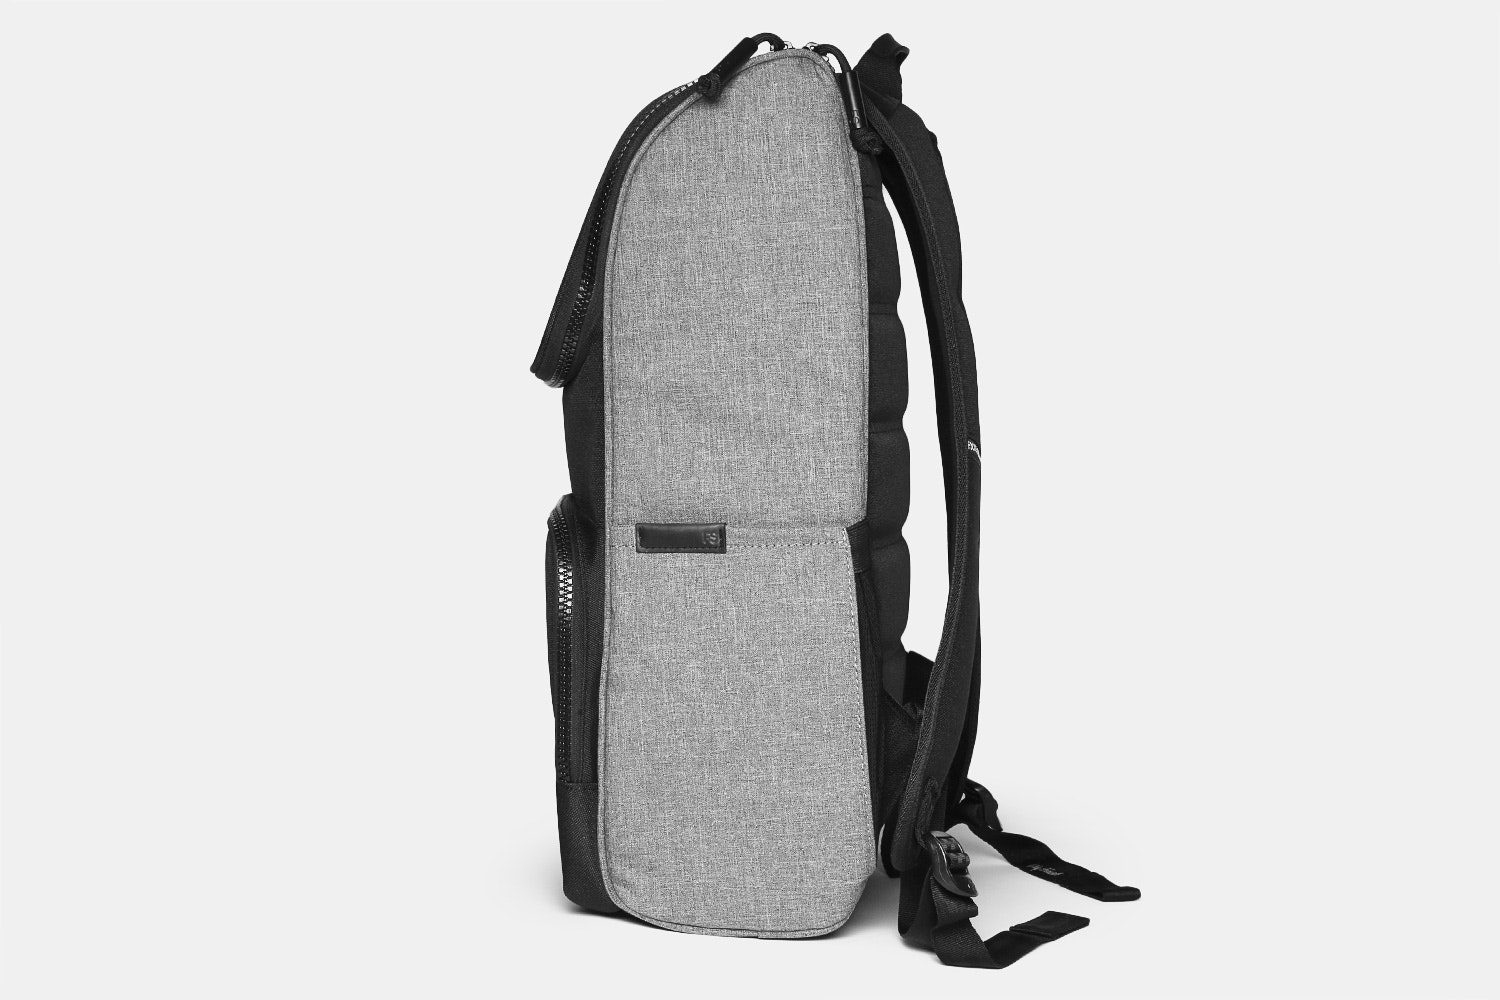 Focused Space The Continuum Backpack